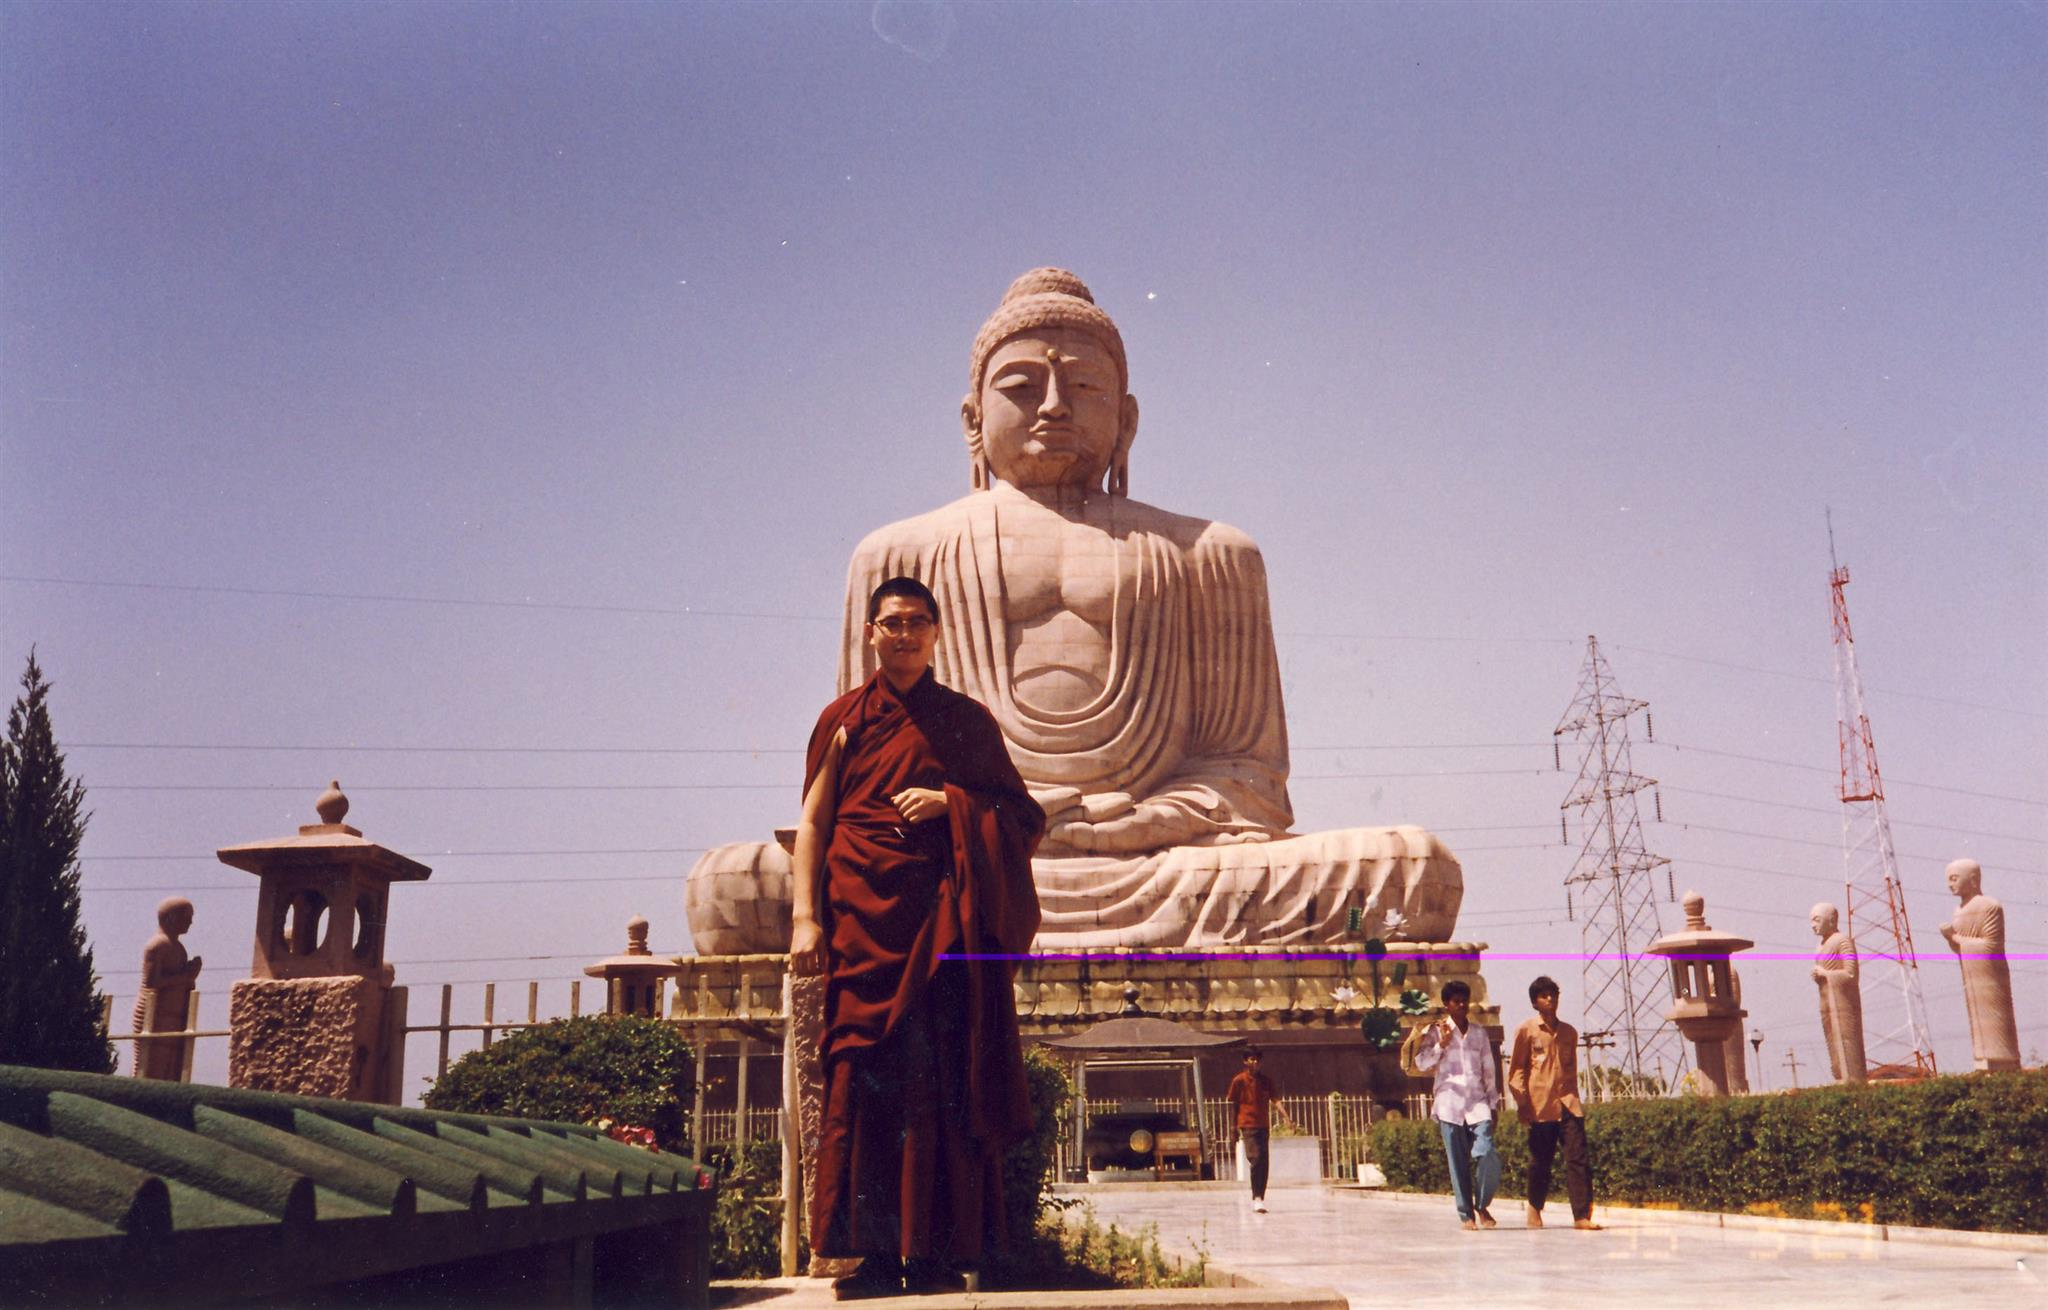 In front of the Great Buddha statue at Bodhgaya, which is 25m tall, made of stone and was consecrated in 1989. Click on image to enlarge.